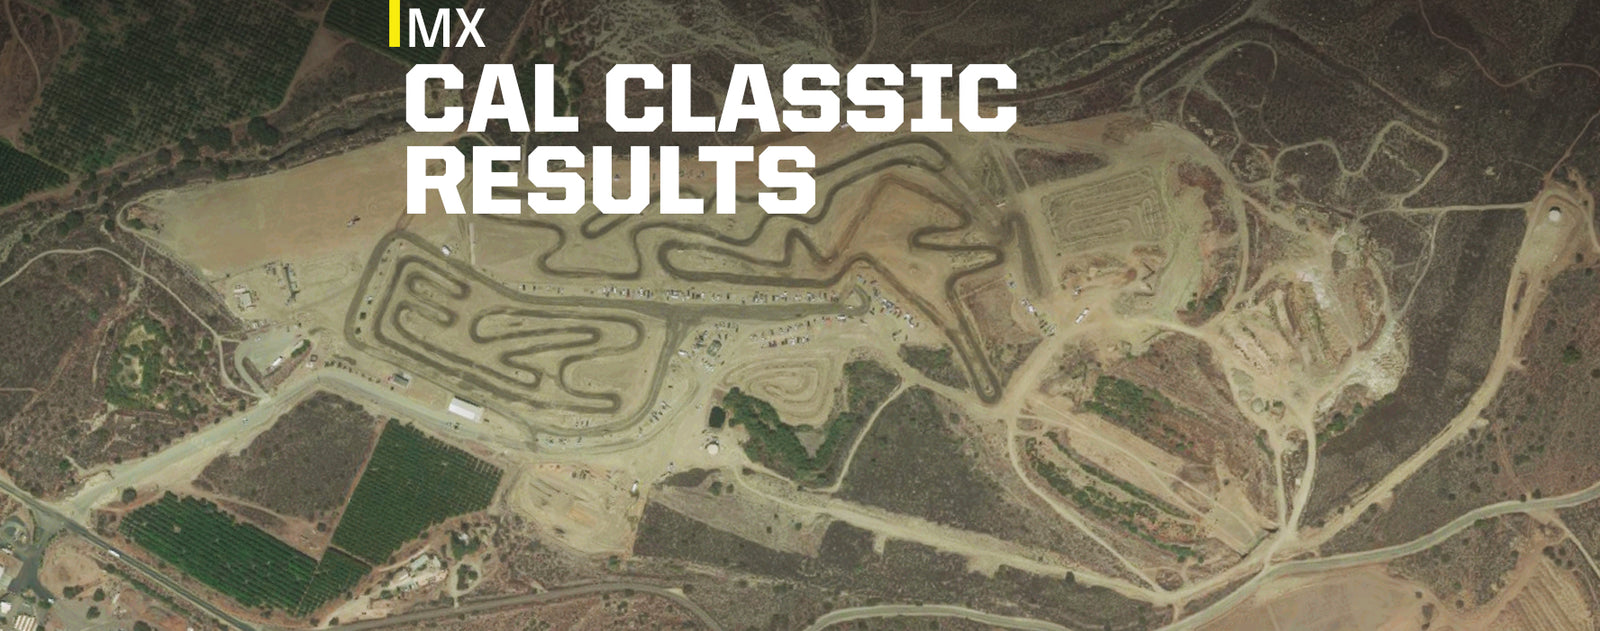 Cal Classic Results